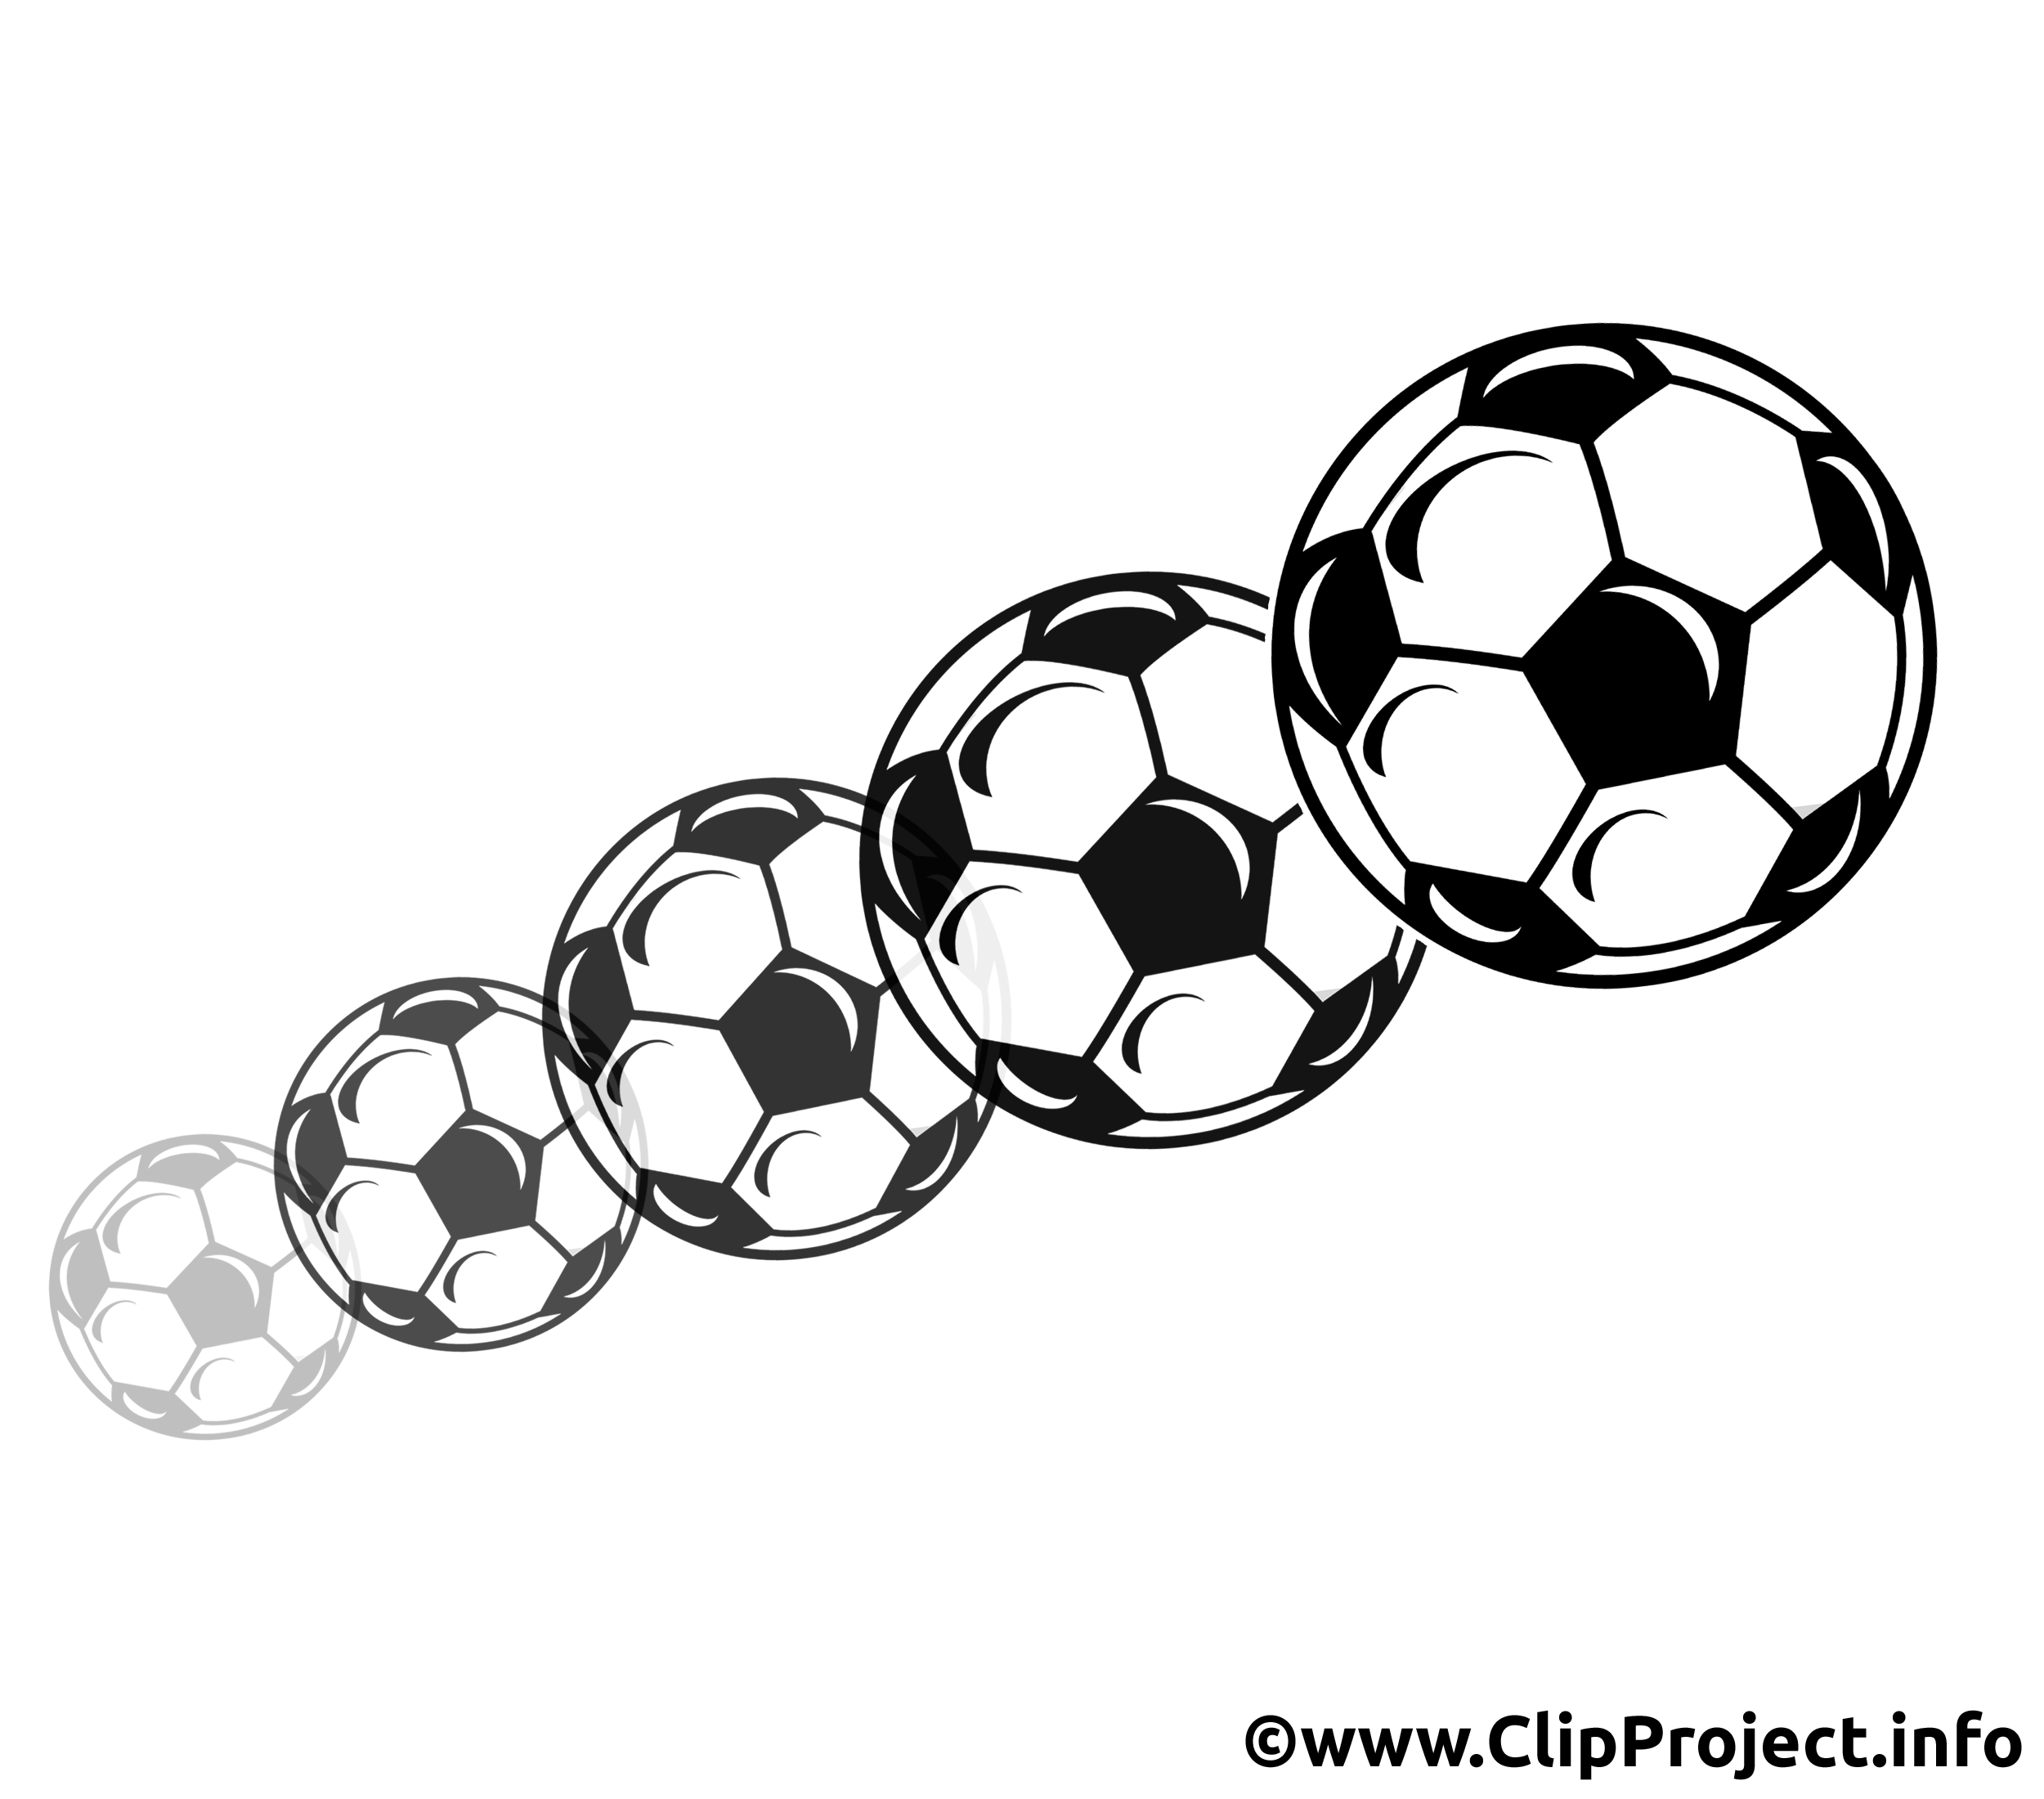 Ballons image gratuite - Football illustration